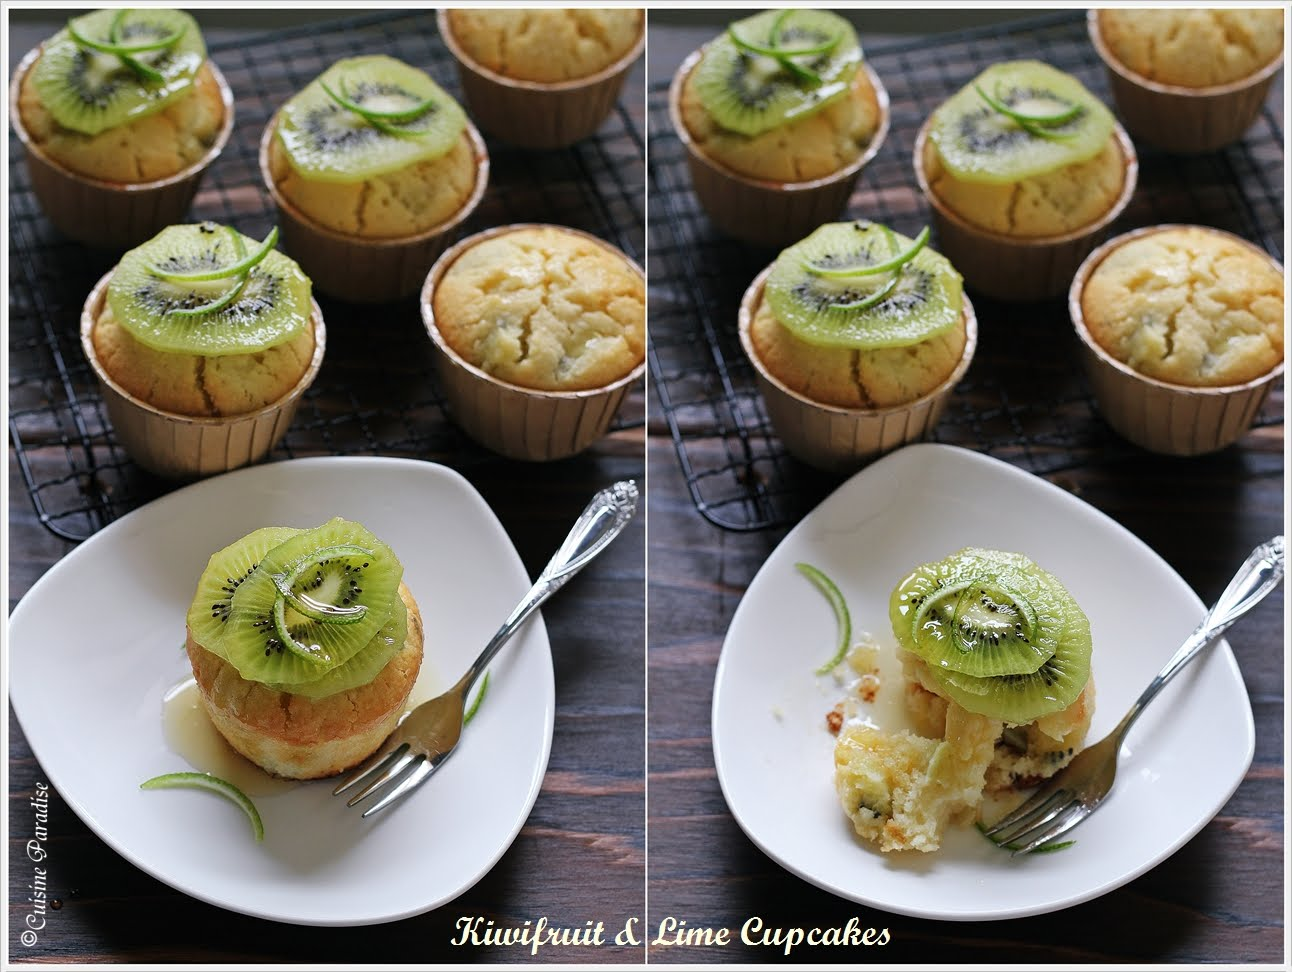 Zespri kiwifruit recipes kiwi lime mint cooler avocado with lastly i hope you would enjoy the above 3 kiwifruit recipes which i have shared with you and to finished up our kiwifruit feast with some yummy dessert forumfinder Choice Image